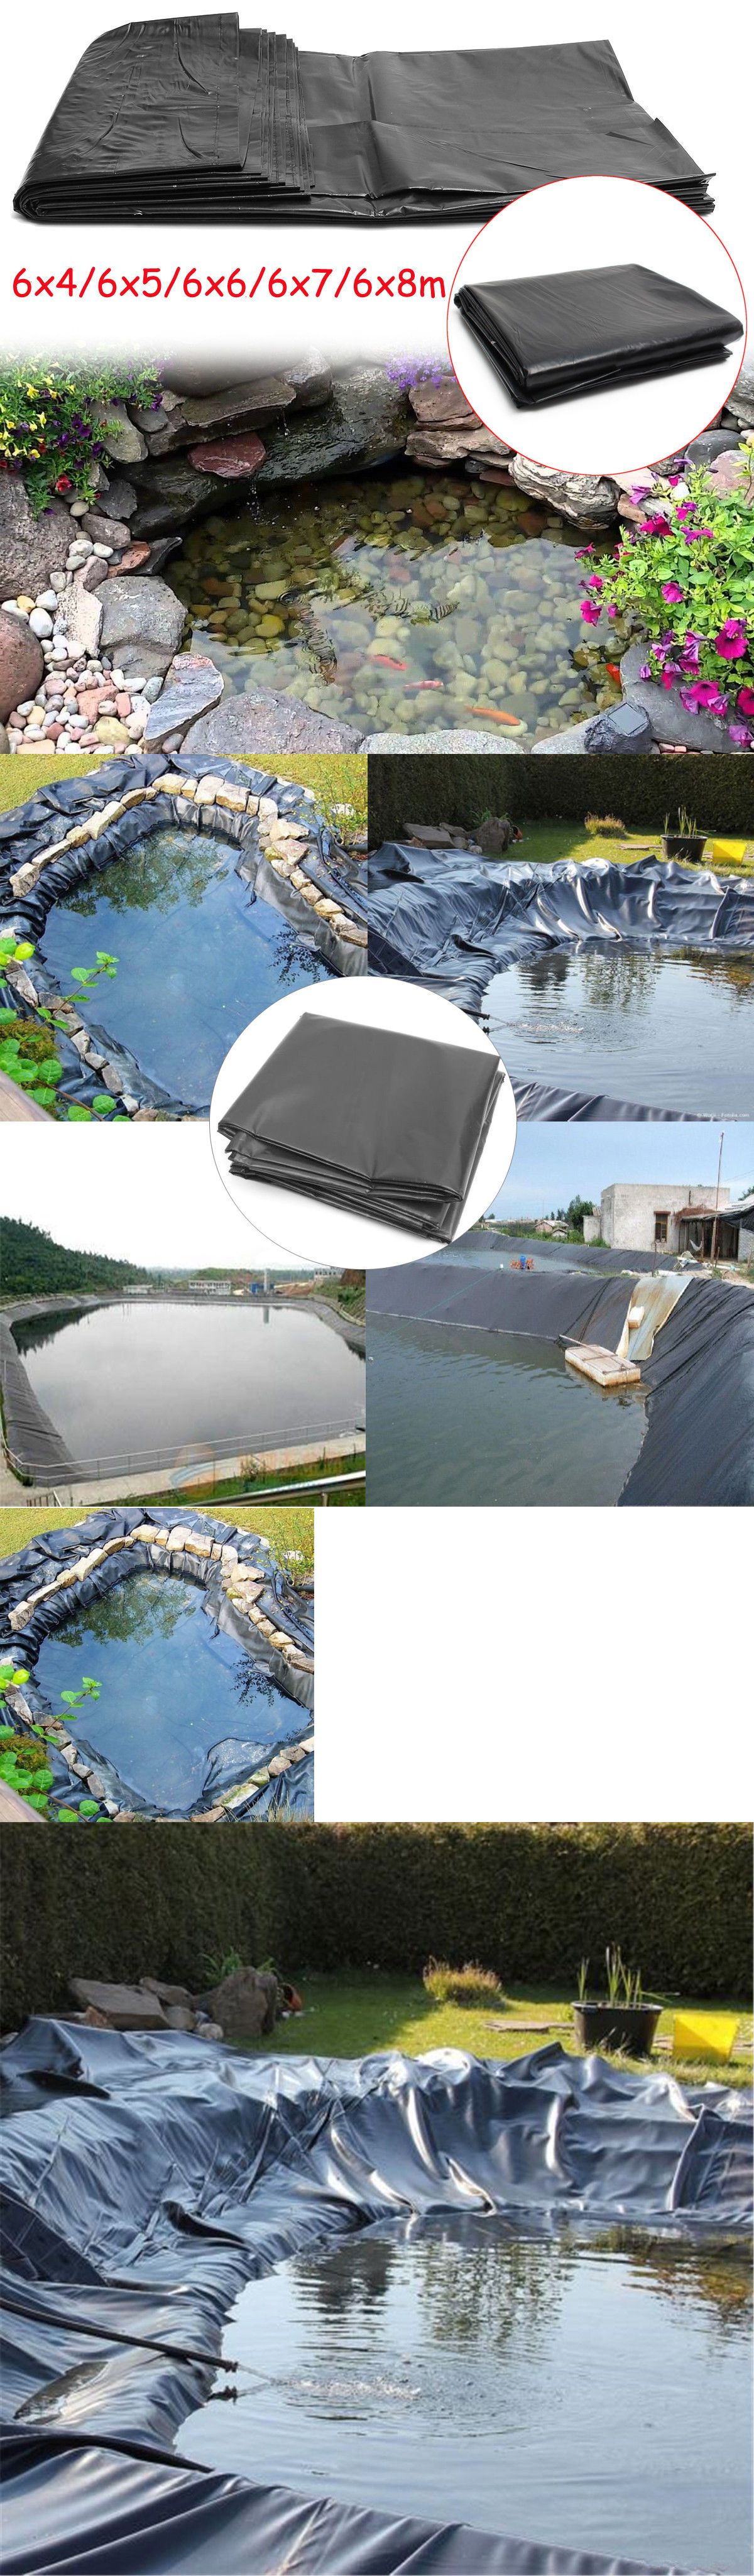 19.69*26.25ft 5 Sizes HDPE Fish Pond Liner Pool Waterproof Impermeable Membrane